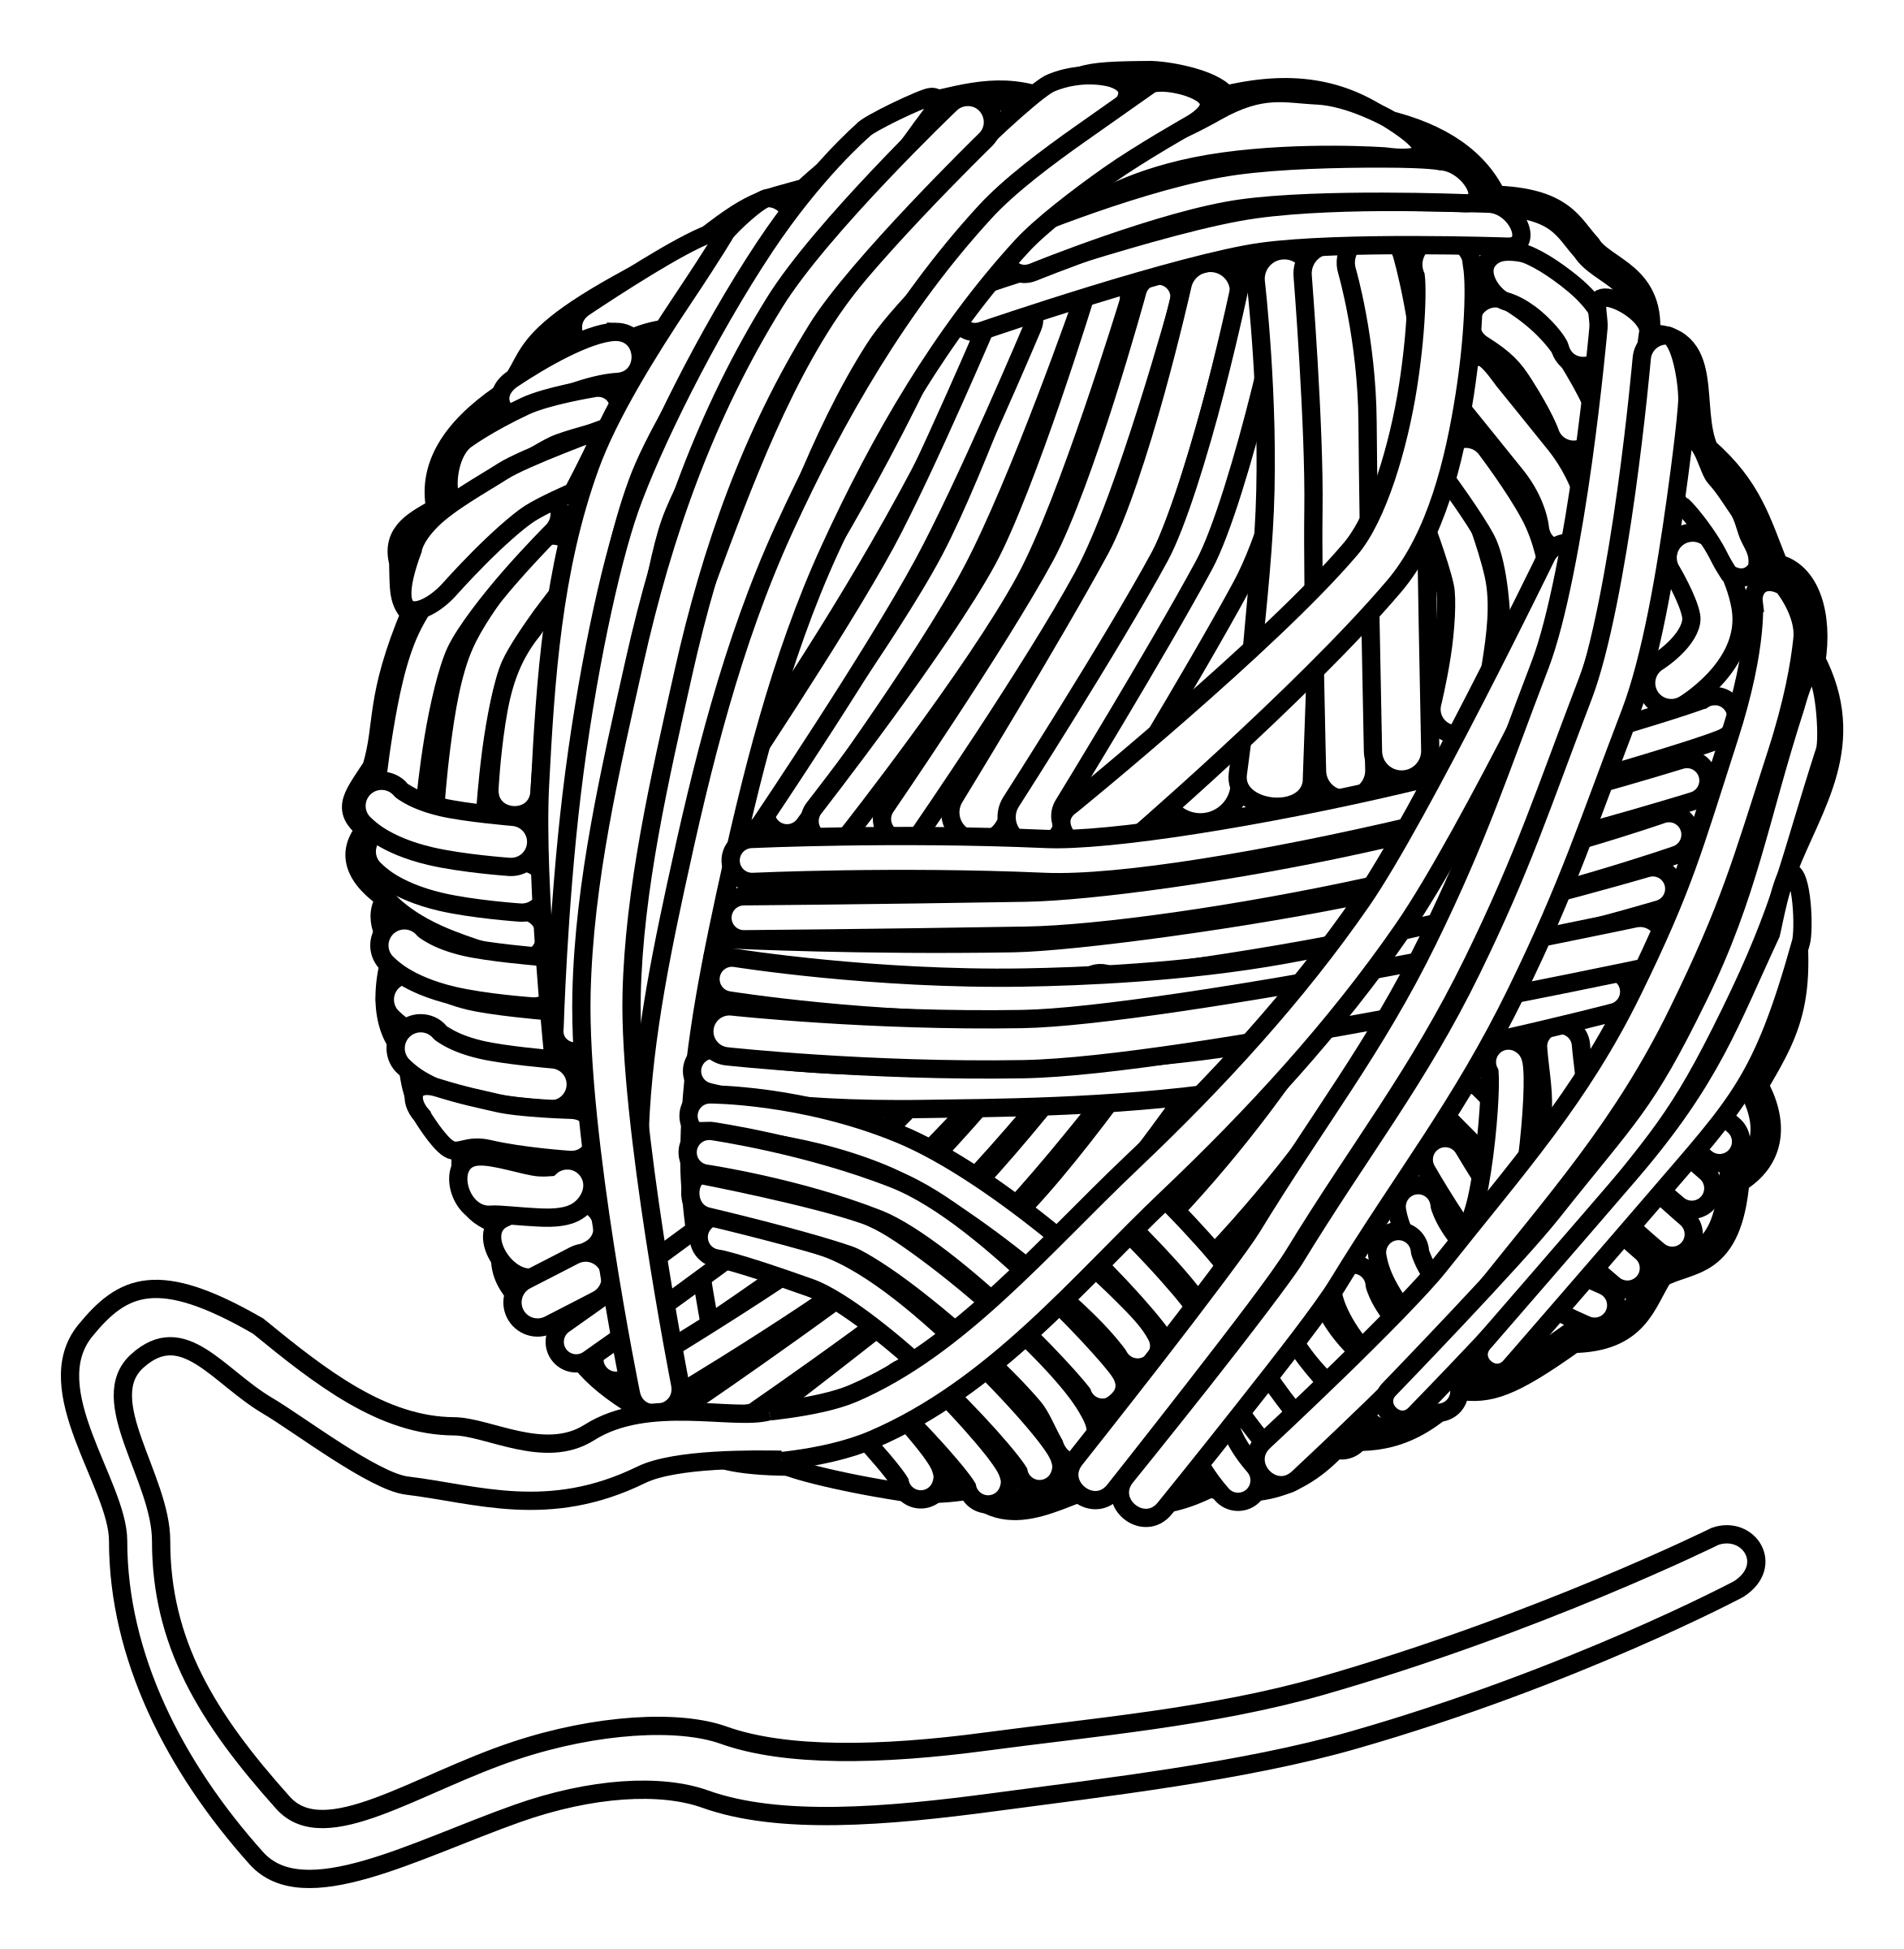 Yarn Clipart Black And White Clipart - wool - linea...